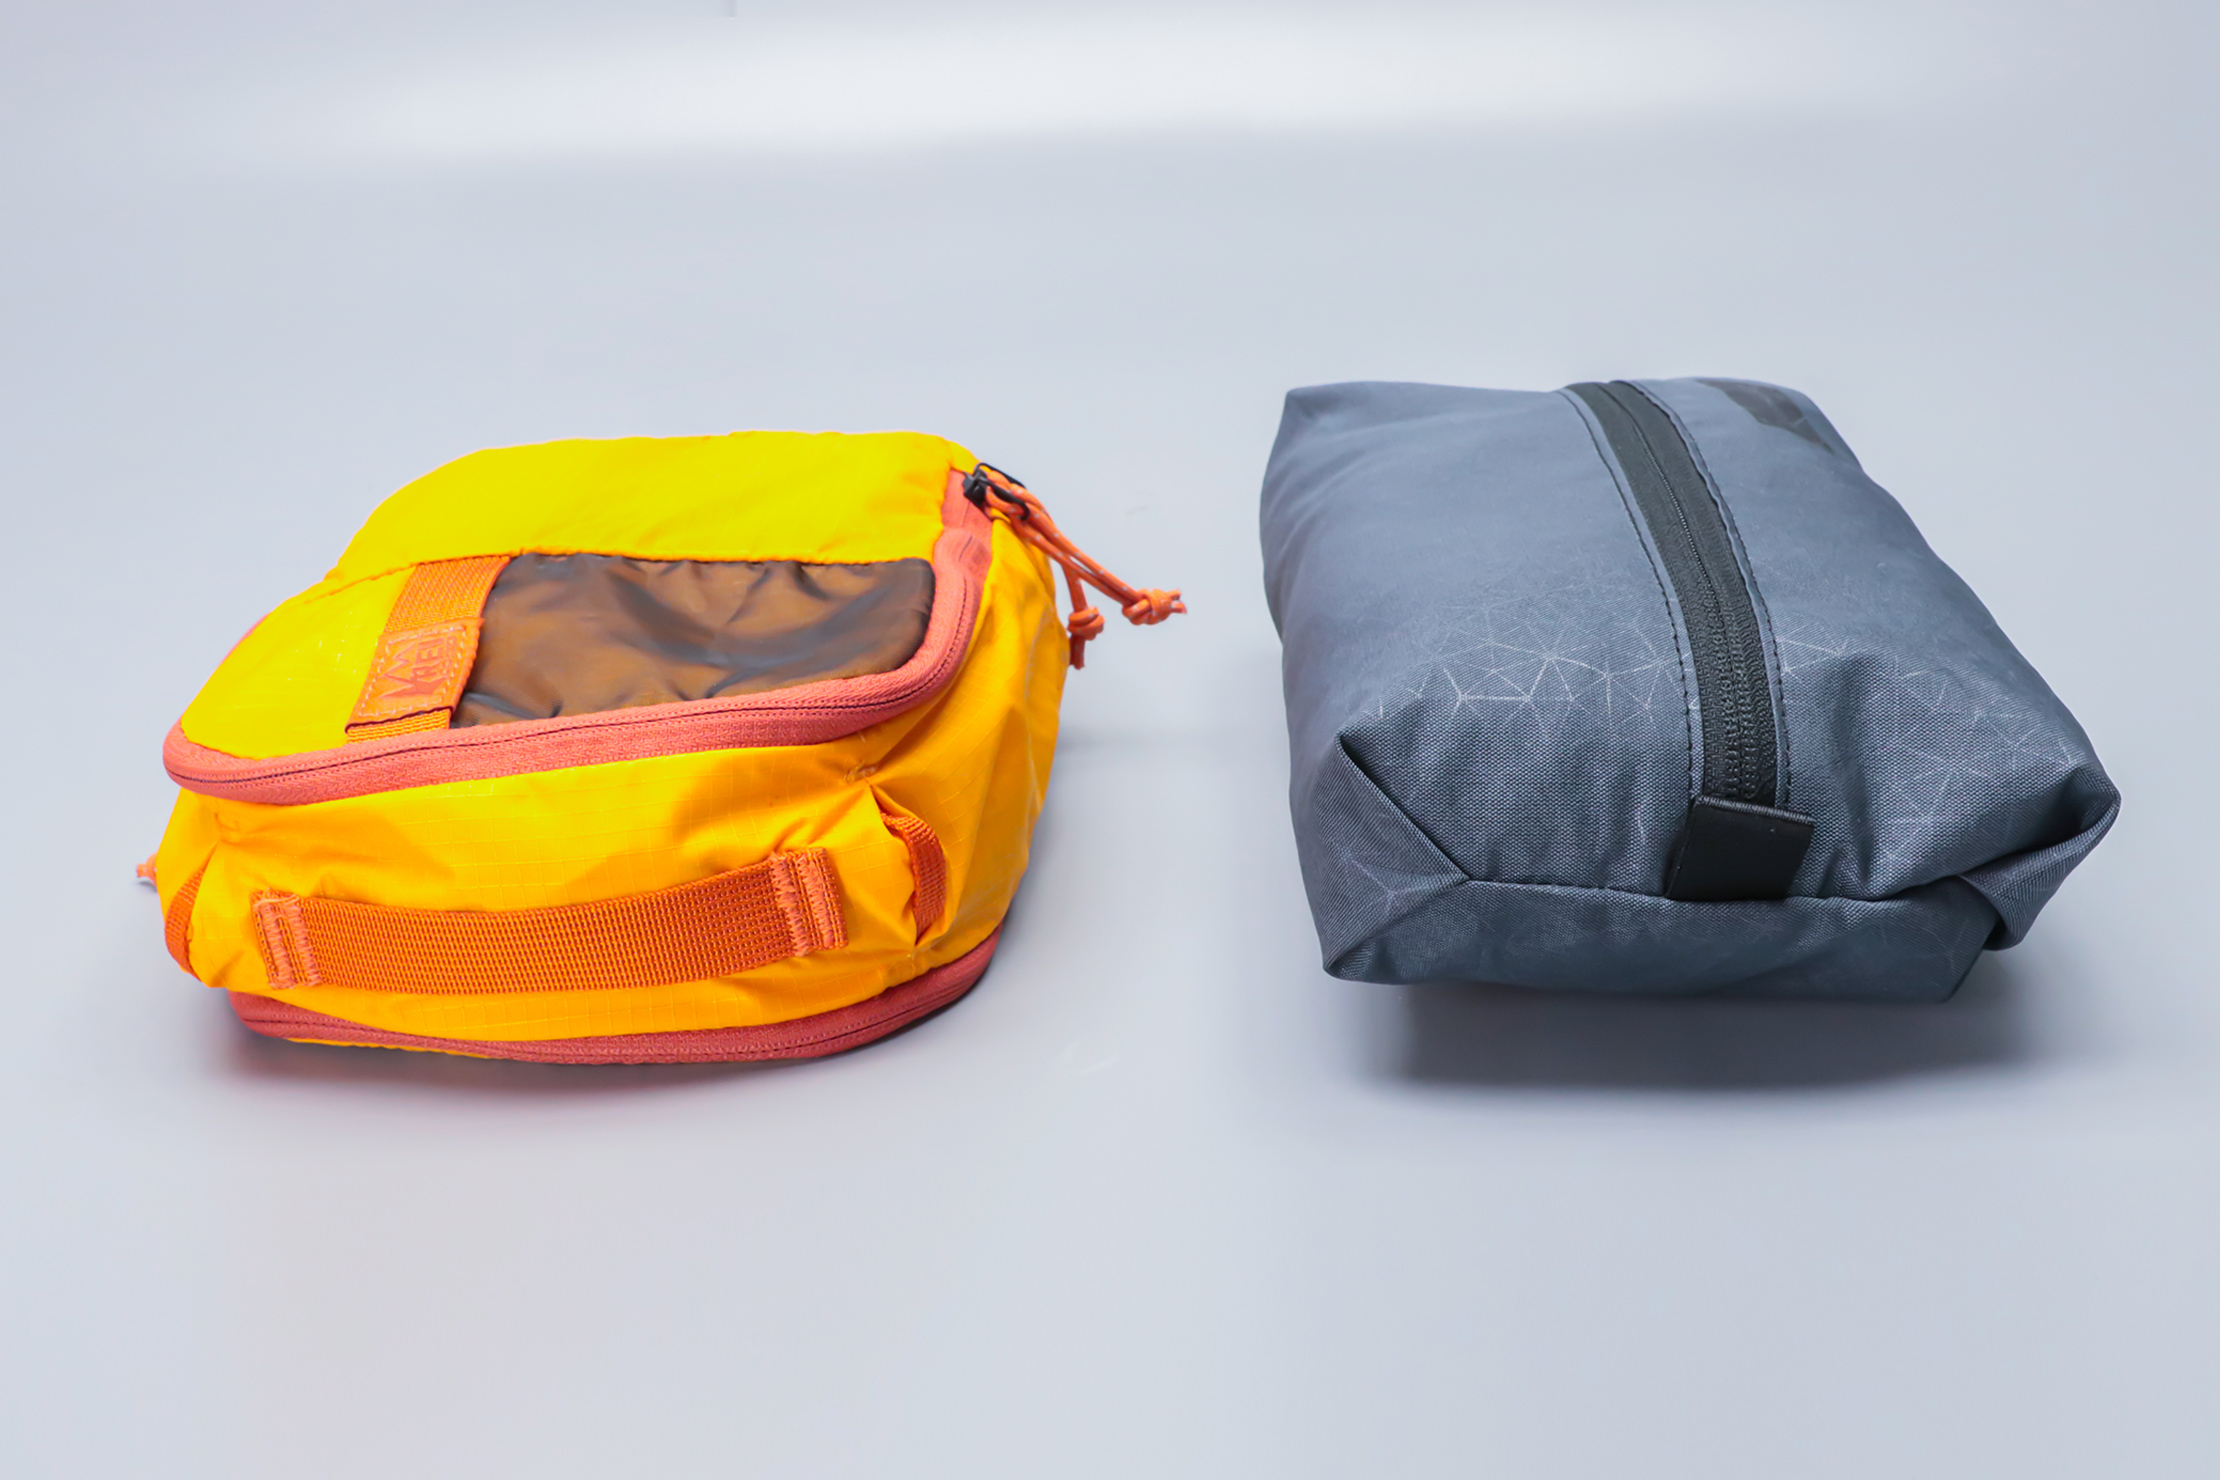 Heimplanet Packing Cubes Two Different Cubes